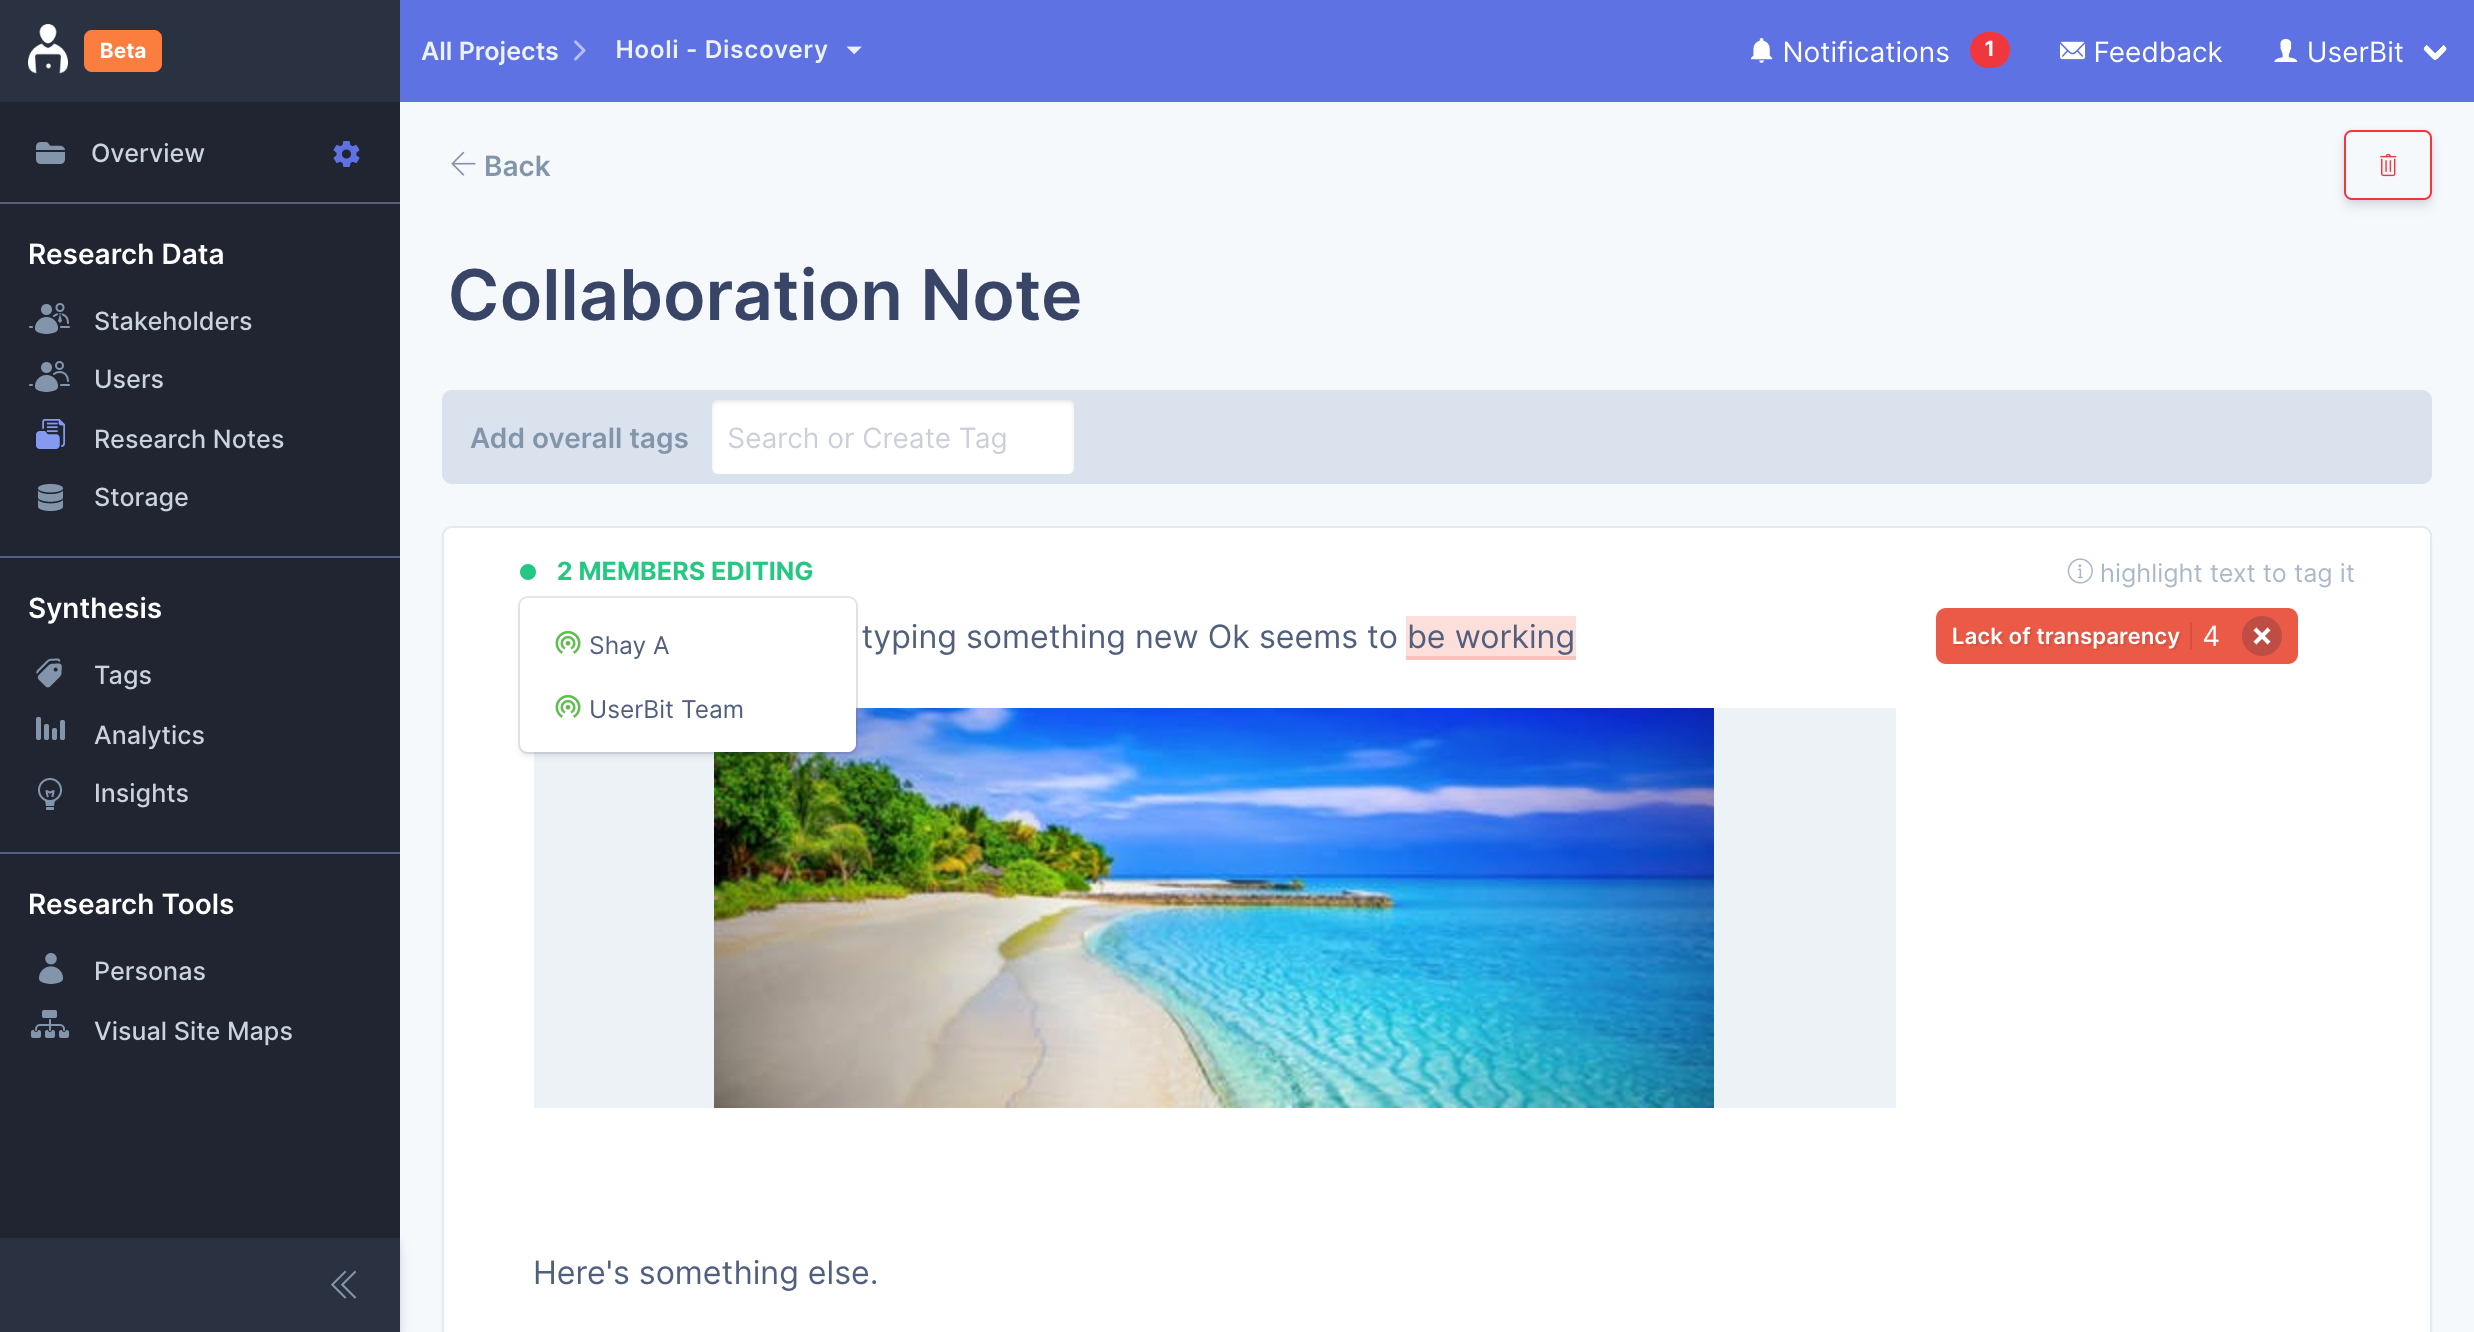 Real-time collaboration on Research notes